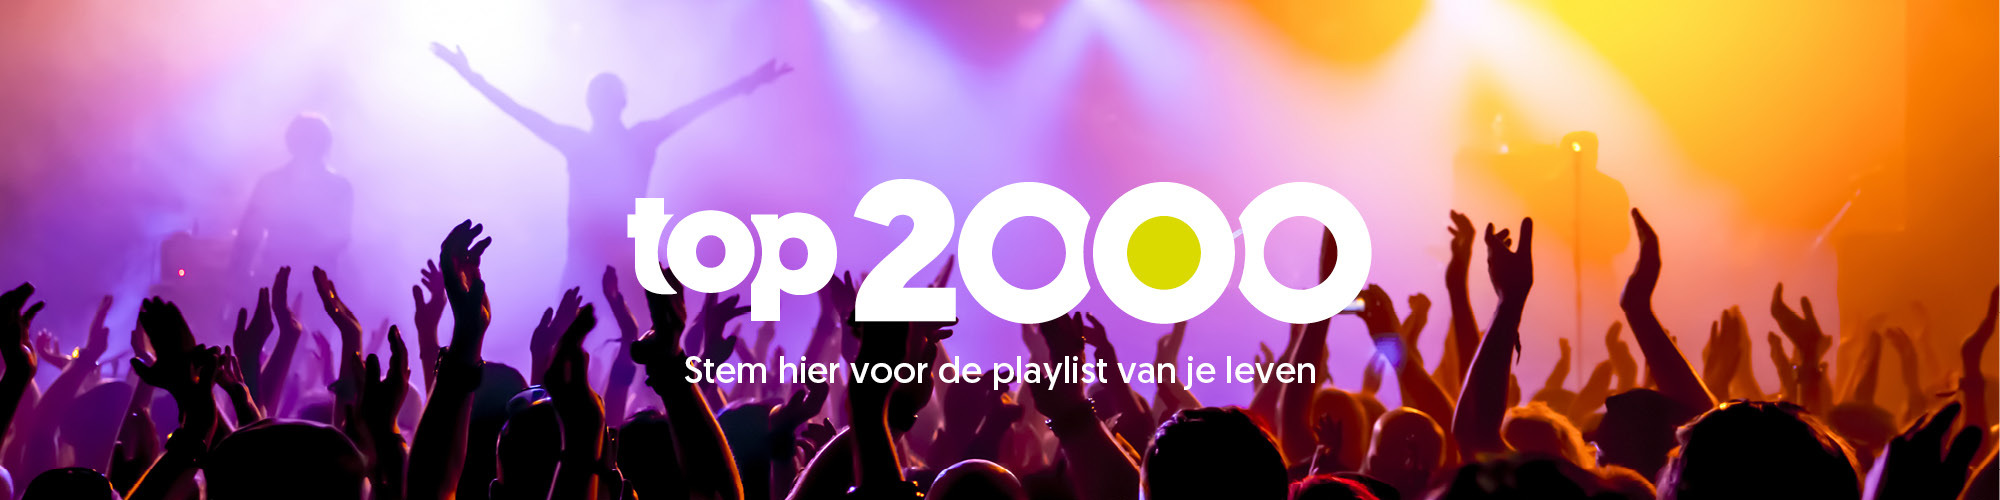 Joe carrousel top2000 finaal stem 11